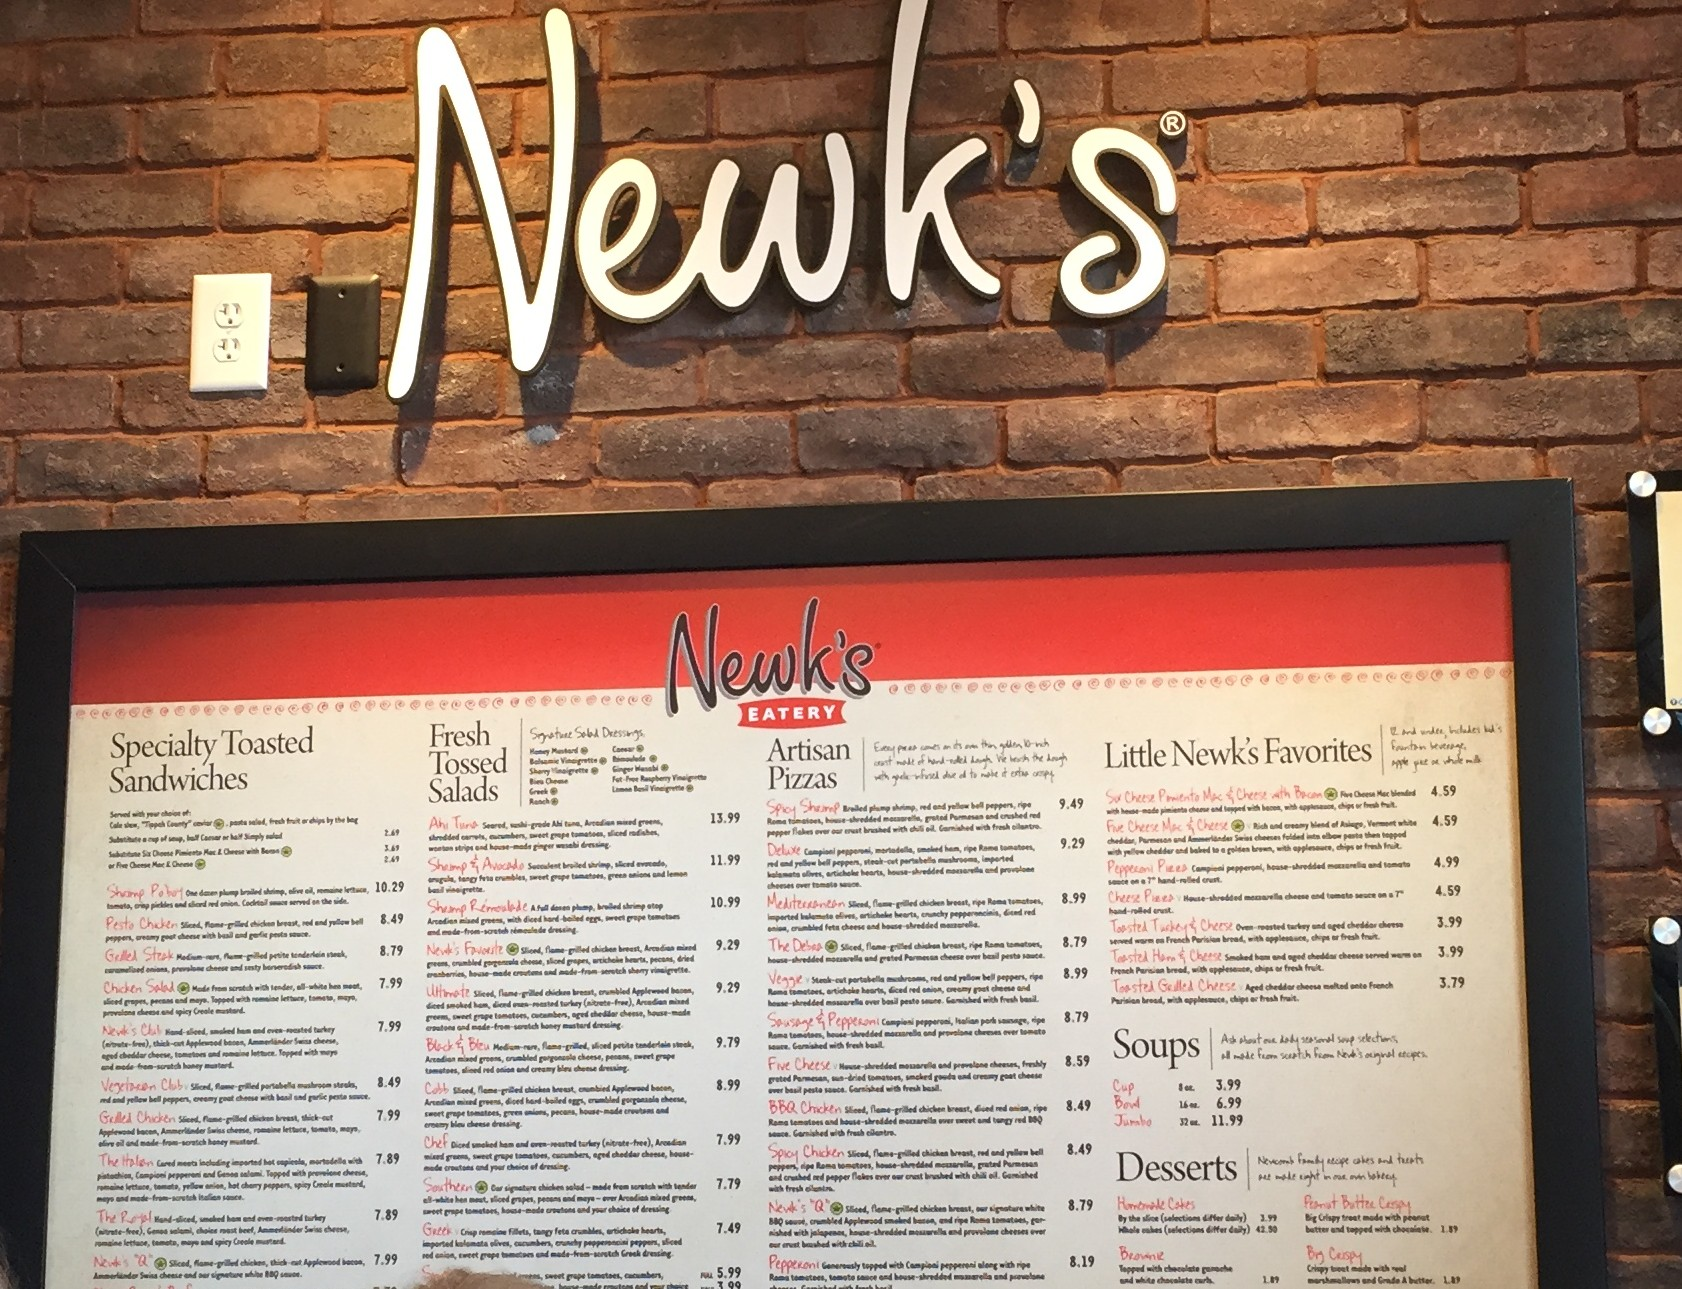 photo regarding Newks Printable Menu named Pattys Foodie Frenzy: Newks Eatery by now within just DUNWOODY! - The